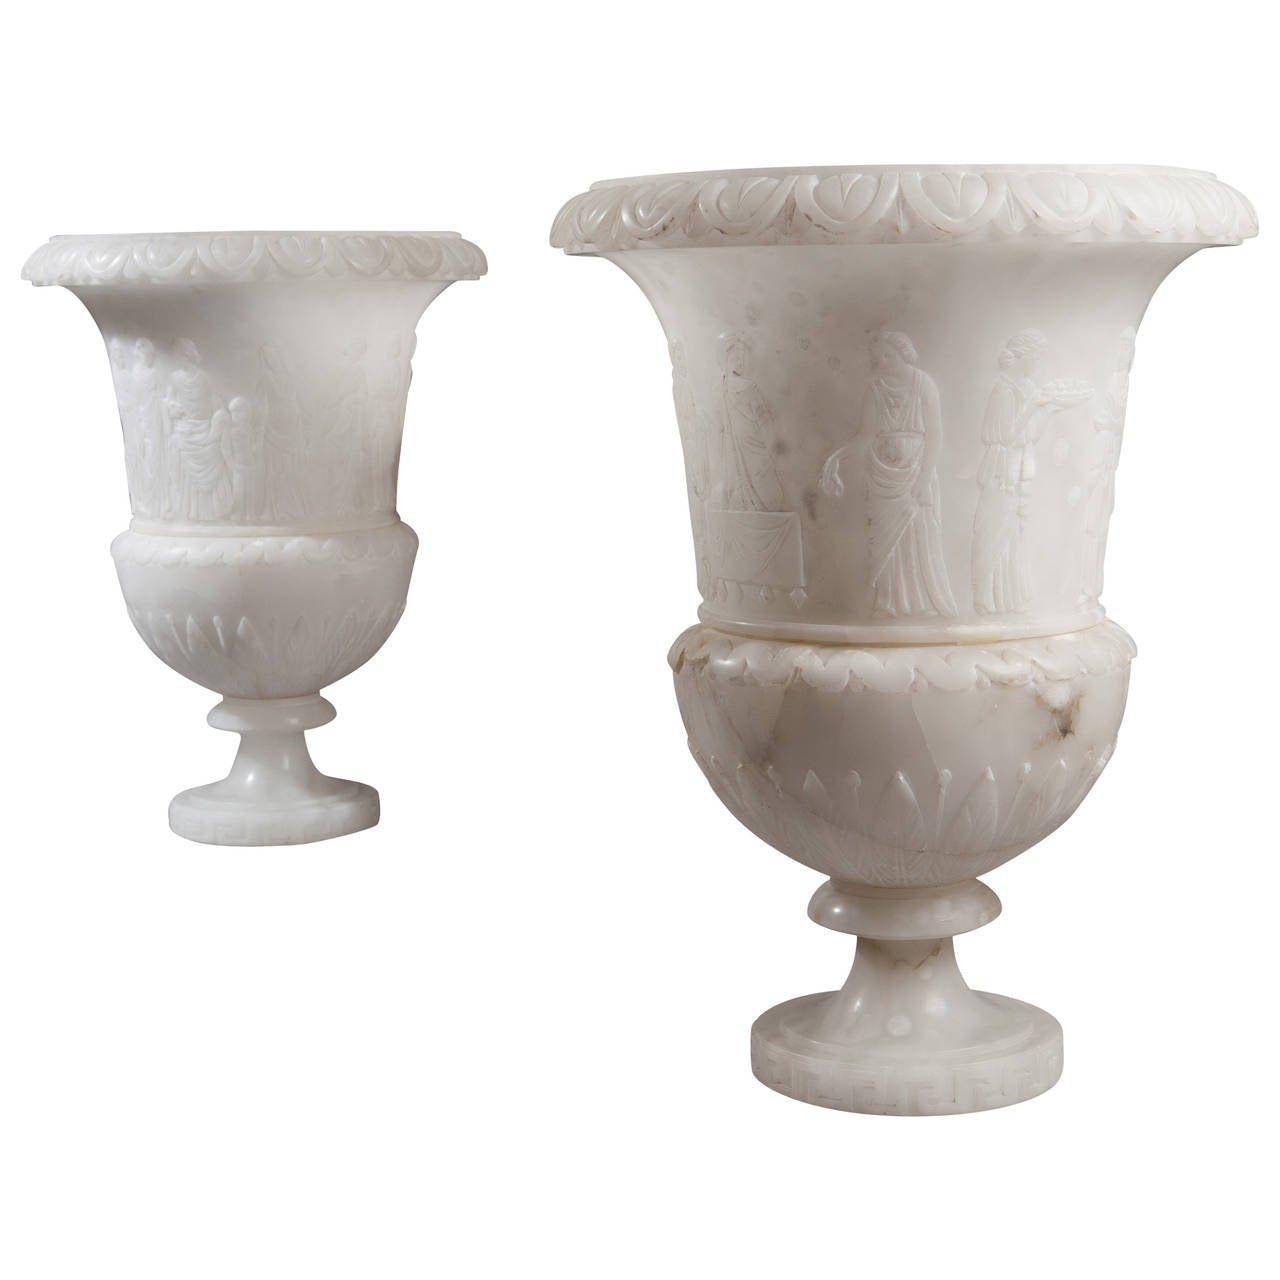 Pair of Alabaster Vases Now as Lamps